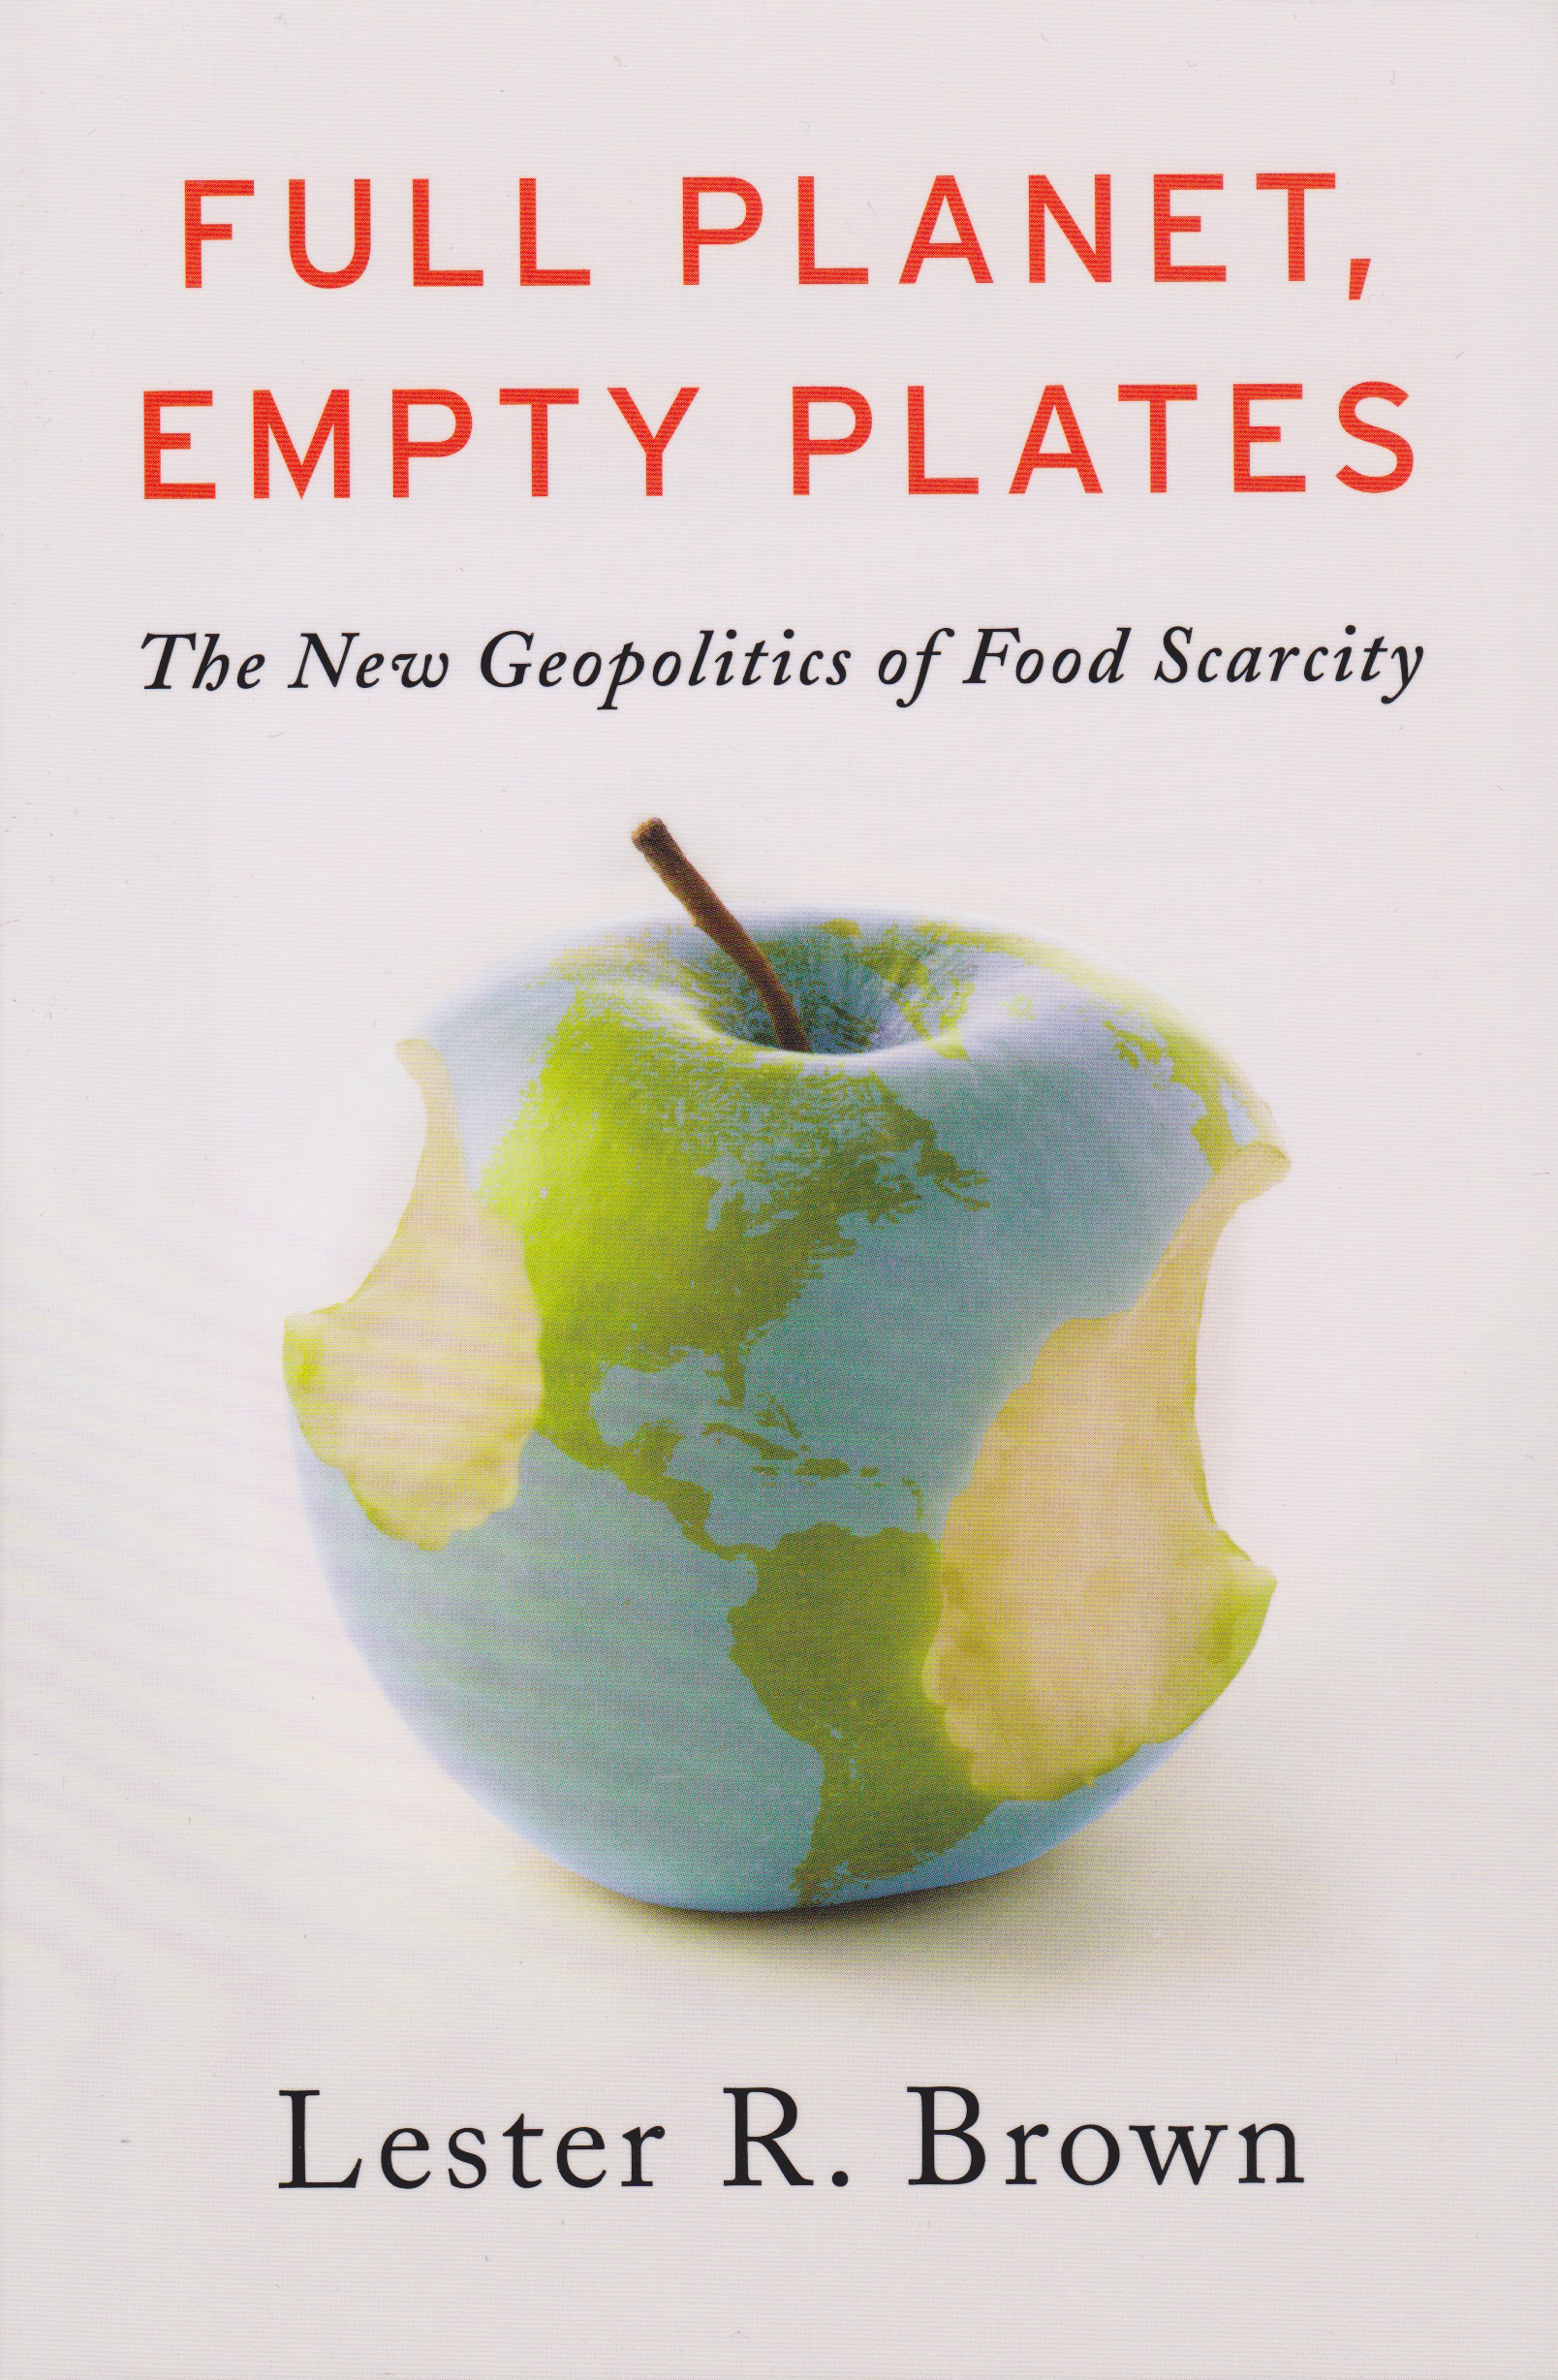 Lester R. Brown: Full Planet, Empty Plates: The New Geopolitics of Food Scarcity. W. W. Norton & Company 2012, 160 s.